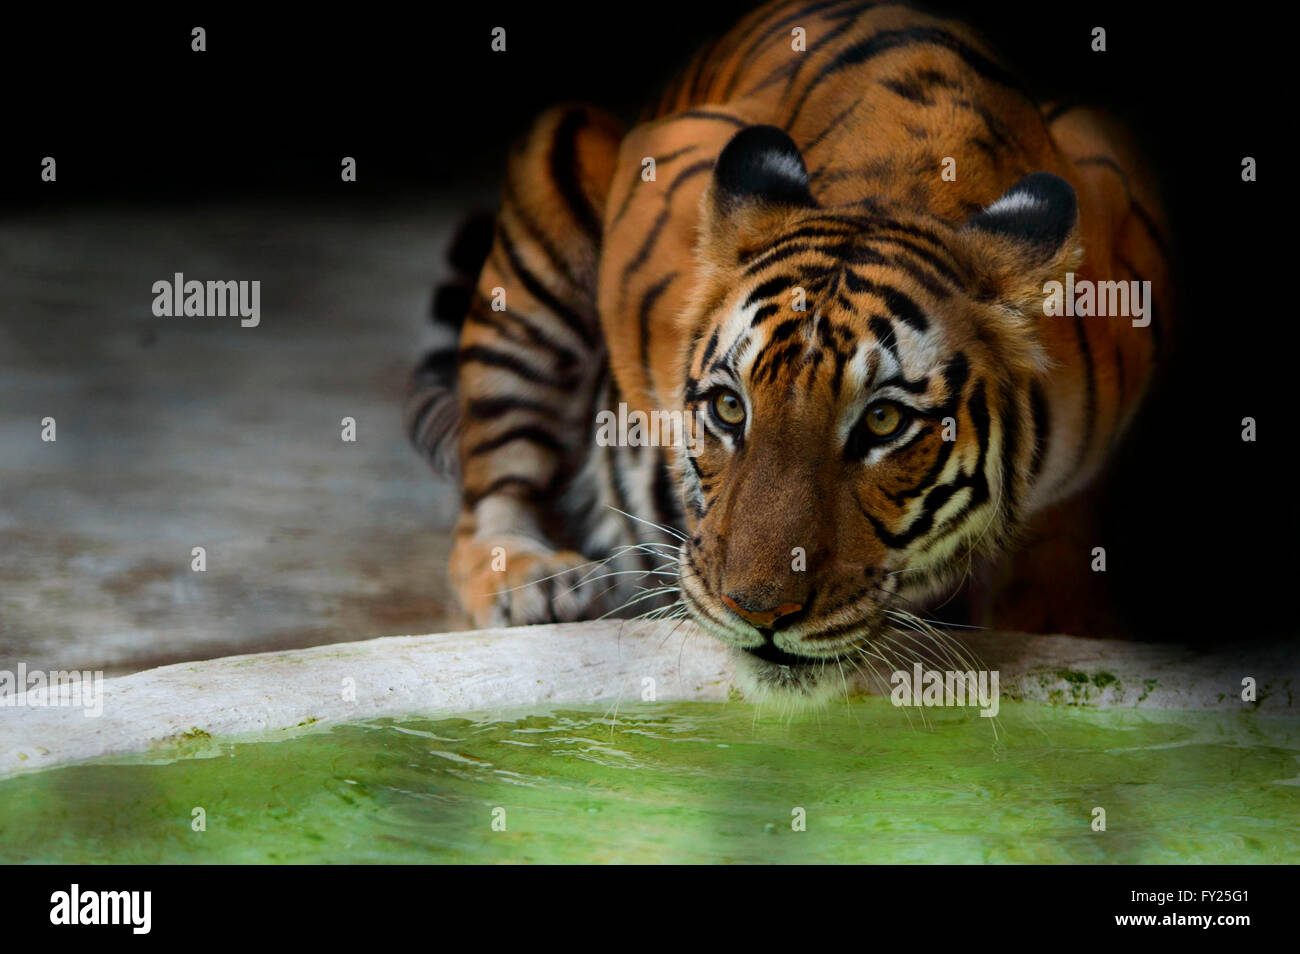 Royal Bengal Tiger having a drink on hot summer afternoon - Stock Image